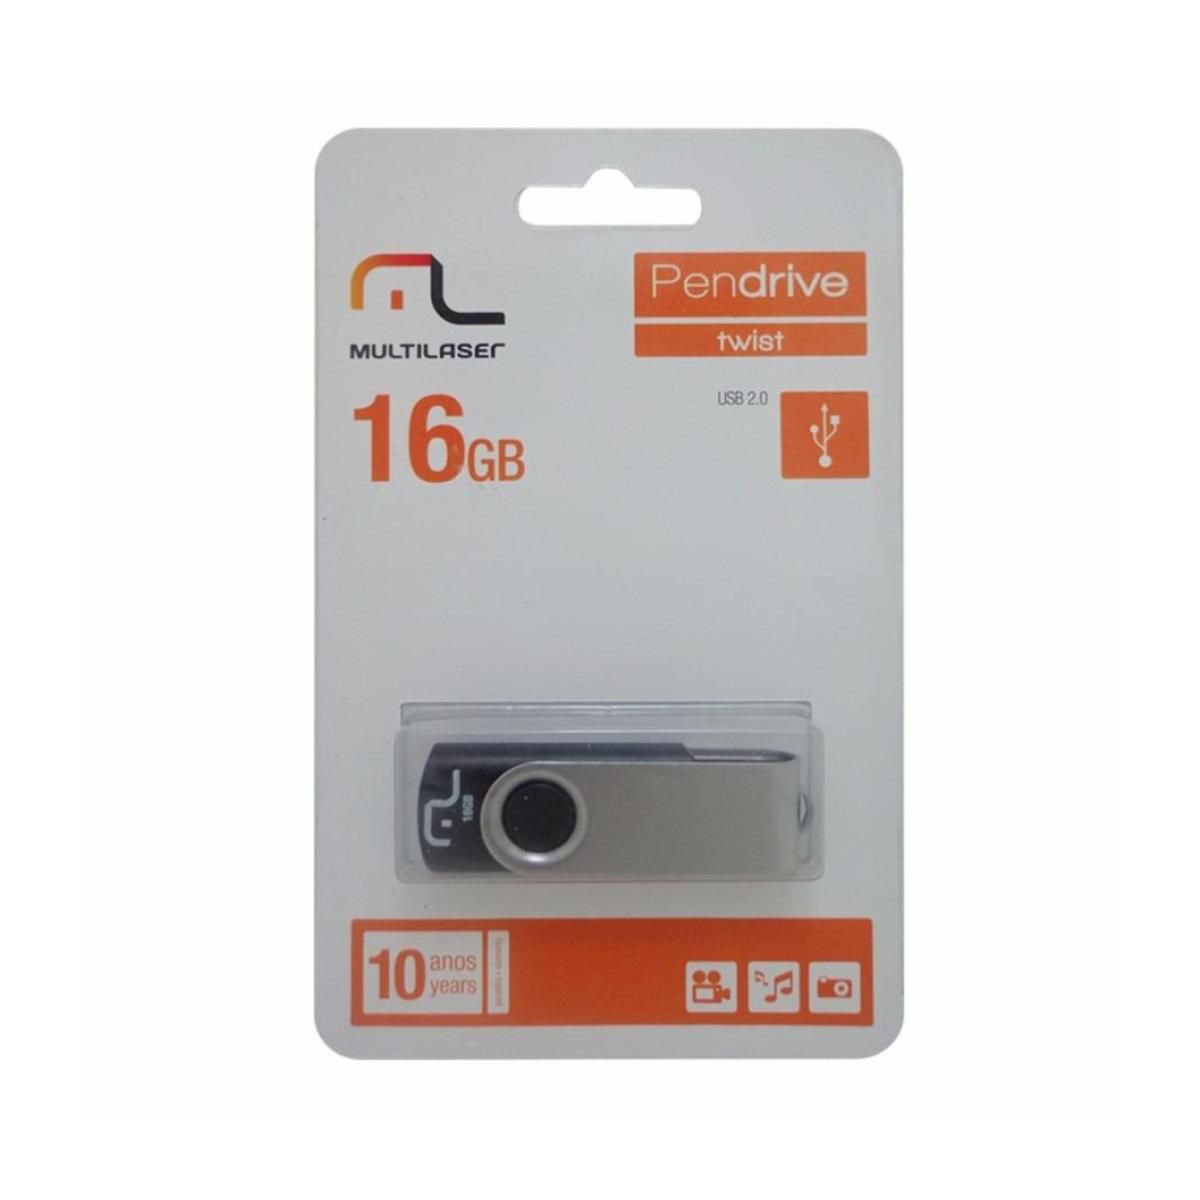 Pendrive 16GB Multilaser